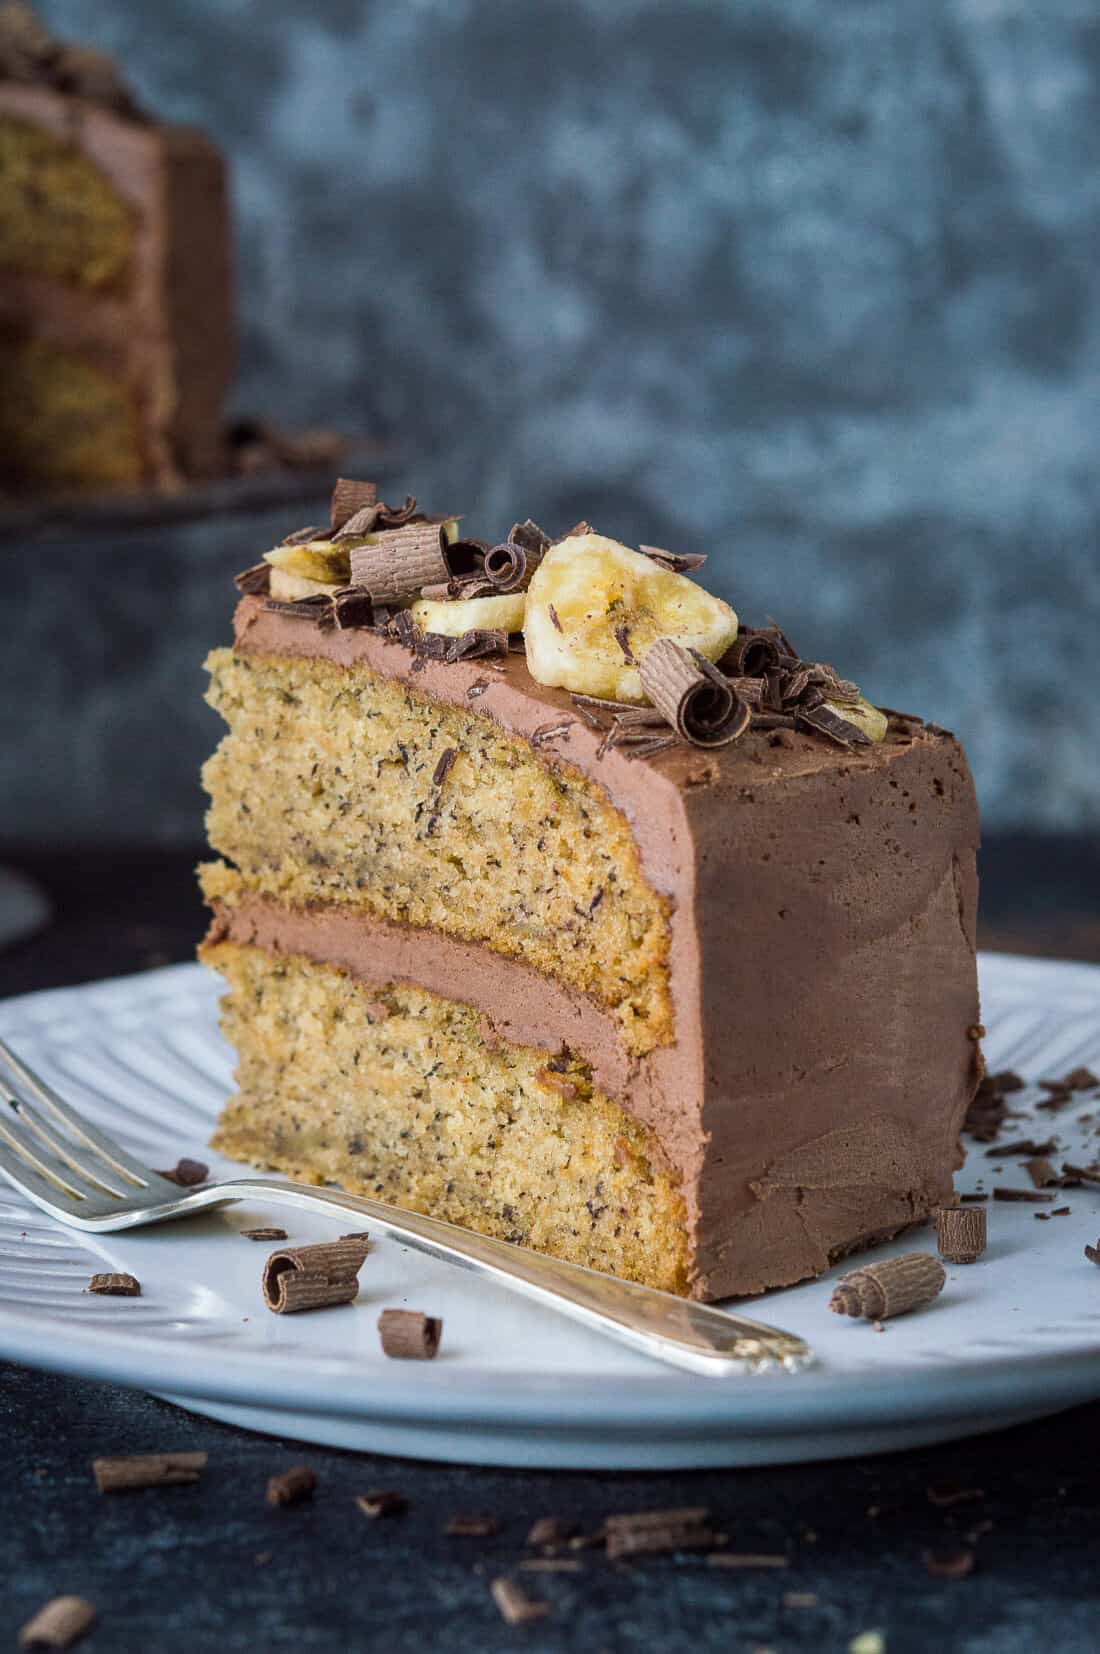 Vegan banana cake with chocolate peanut butter frosting - easy to make, fluffy, moist banana cake filled with smooth, creamy peanut butter and chocolate buttercream. The perfect cake for all occasions! #vegan #bananacake #vegancake #bananabread #baking